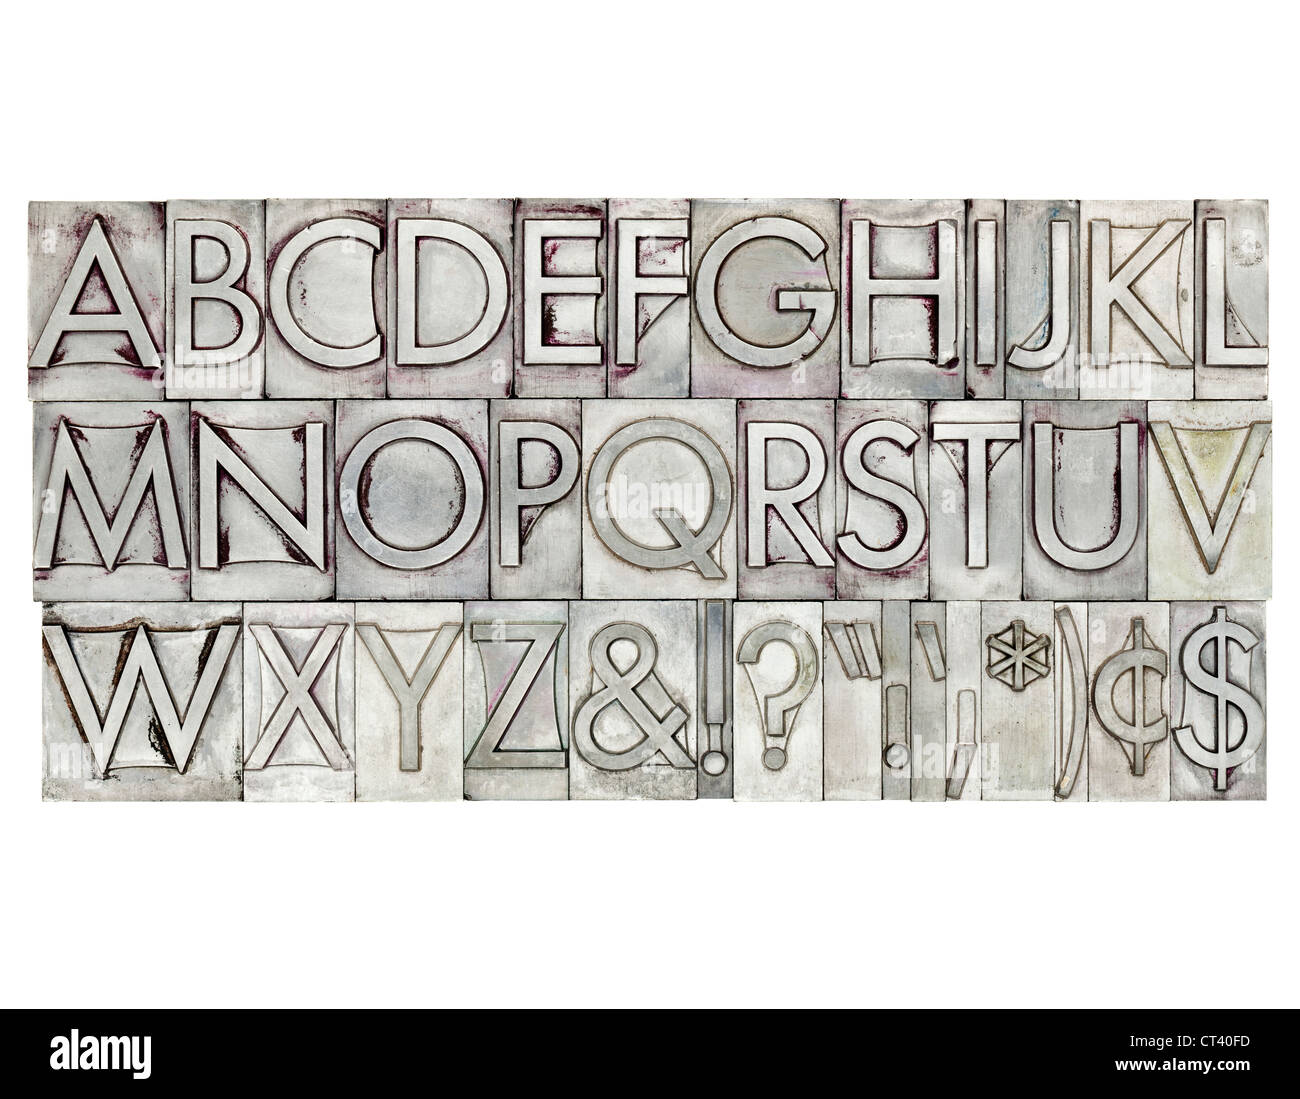 English alphabet, dollar, cent and punctuation signs in vintage metal type - Stock Image